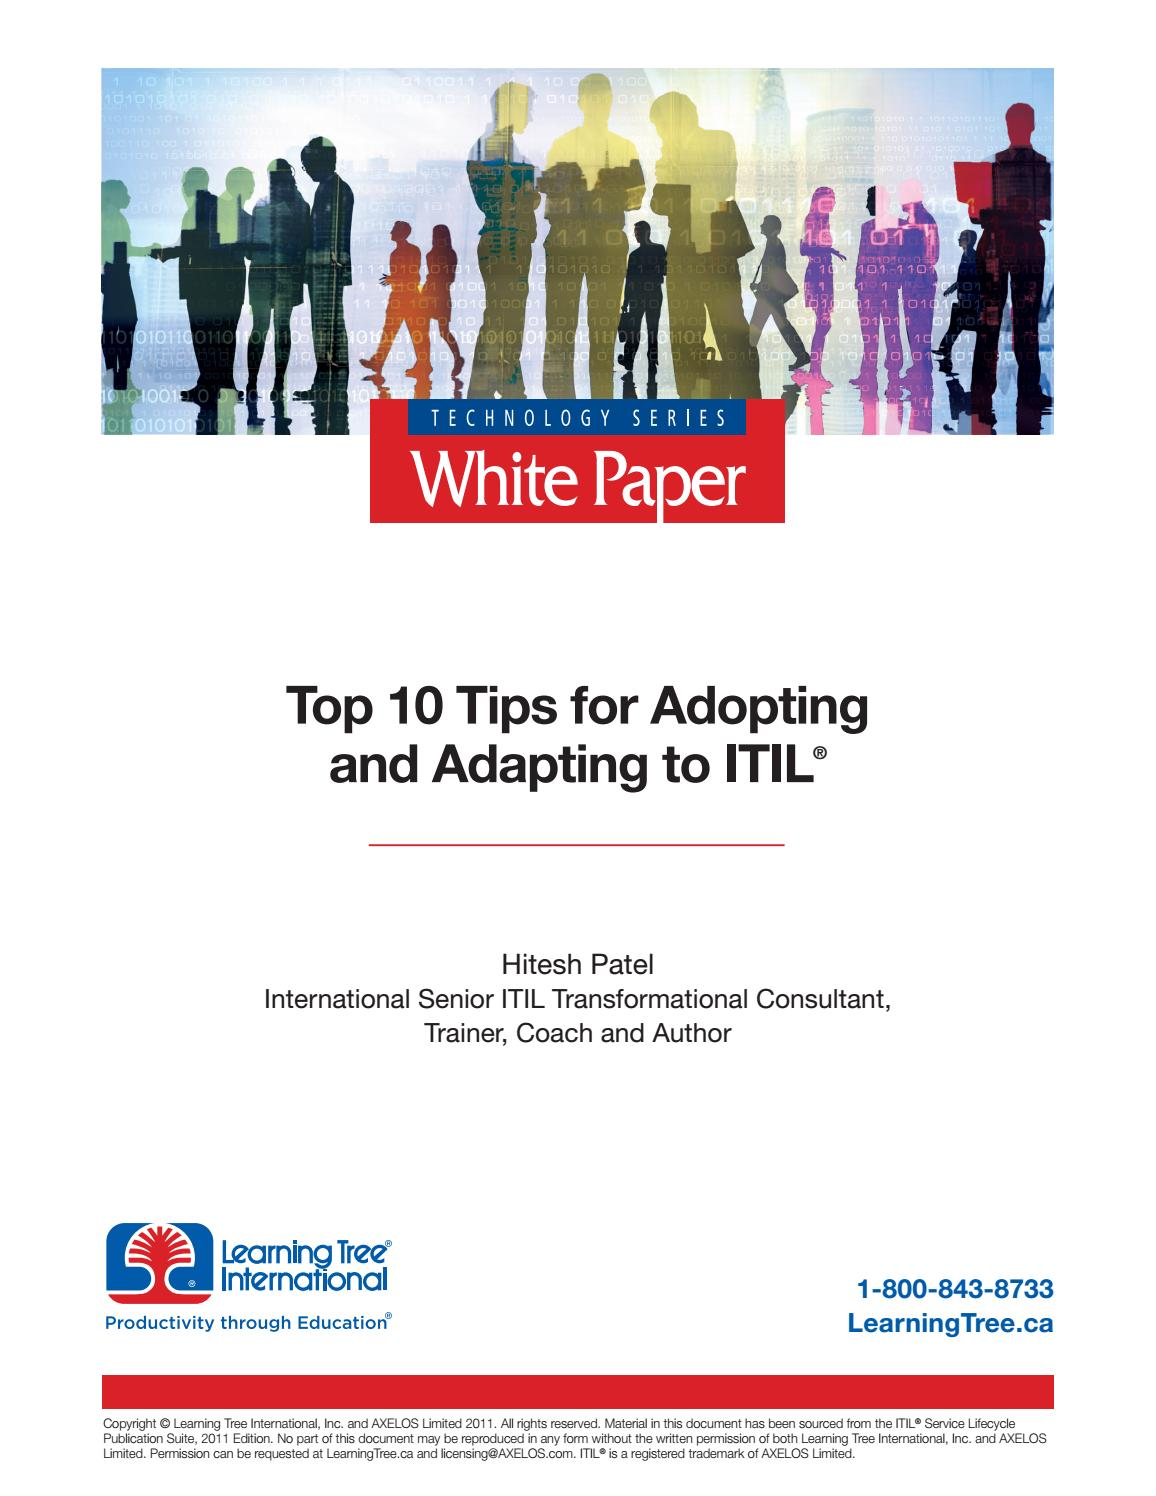 Top 10 tips for adopting and adapting to itil ca edition by top 10 tips for adopting and adapting to itil ca edition by learningtree international issuu 1betcityfo Images